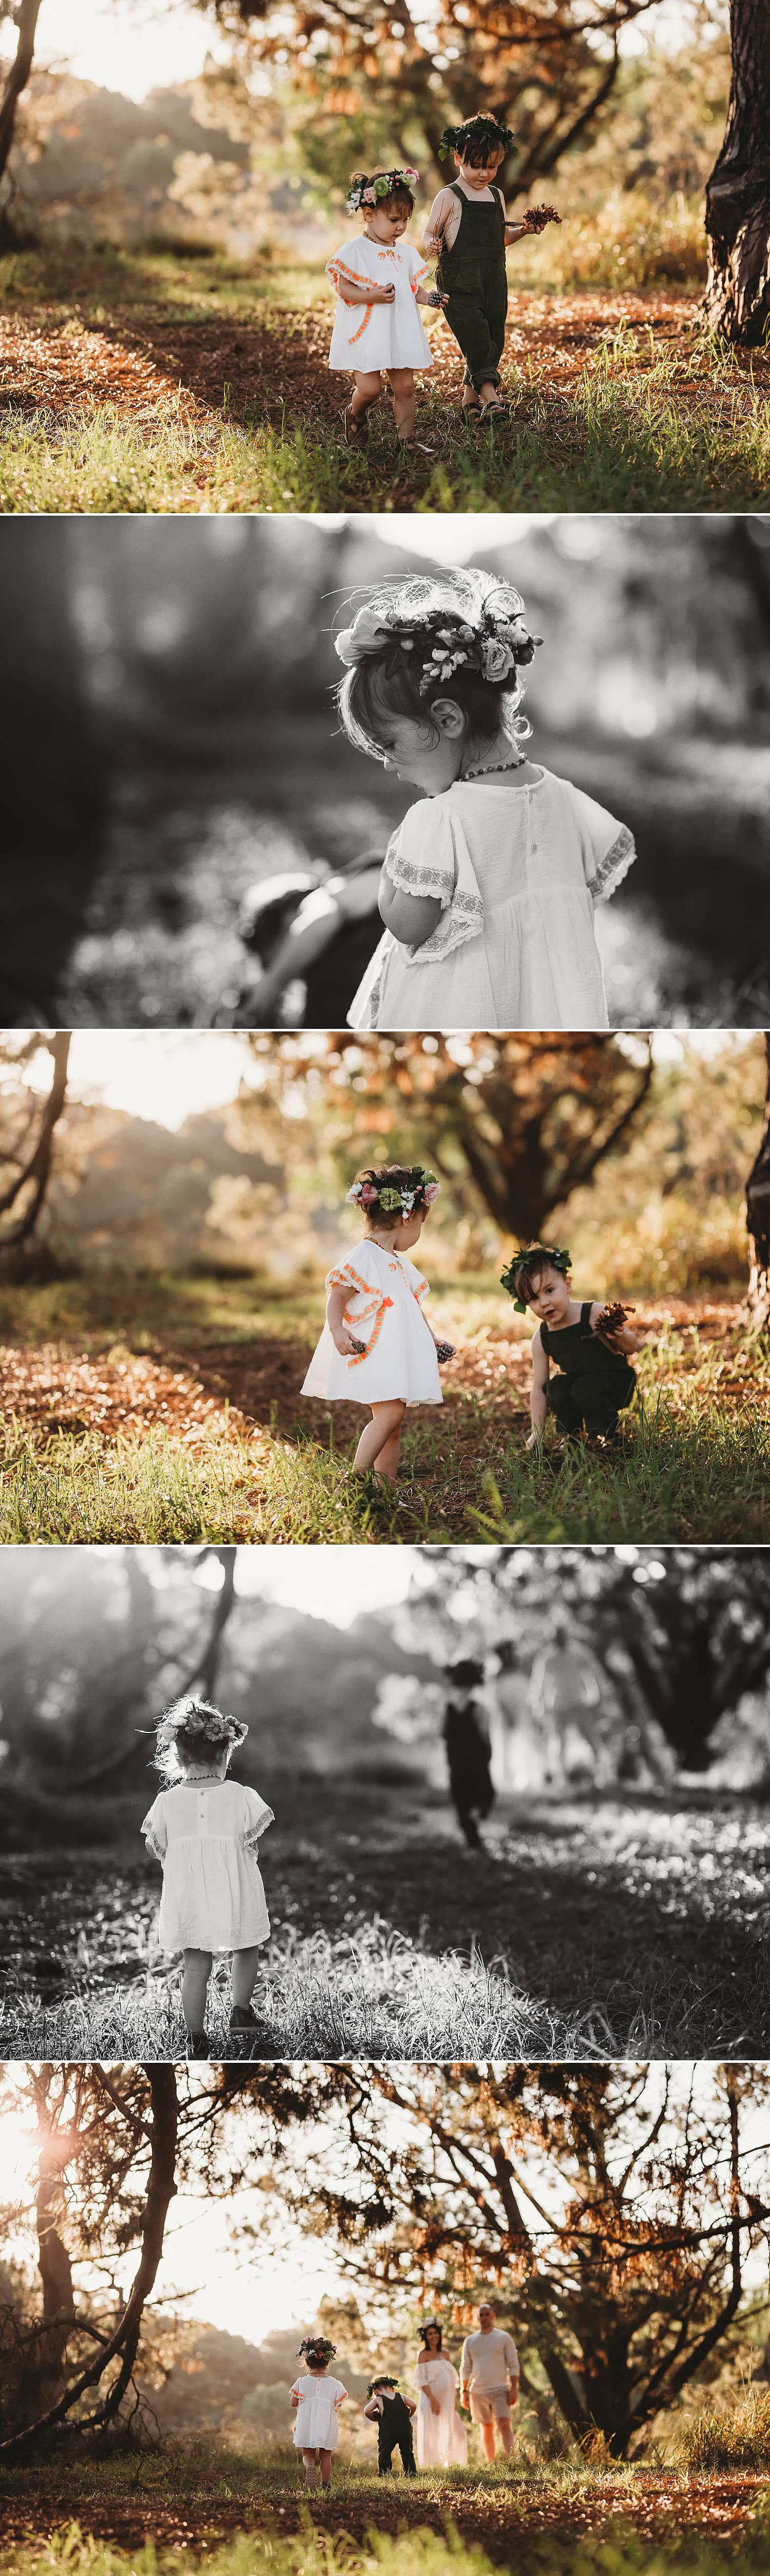 Sutherland-Shire-Lifestyle-Family-Photography-Sydney